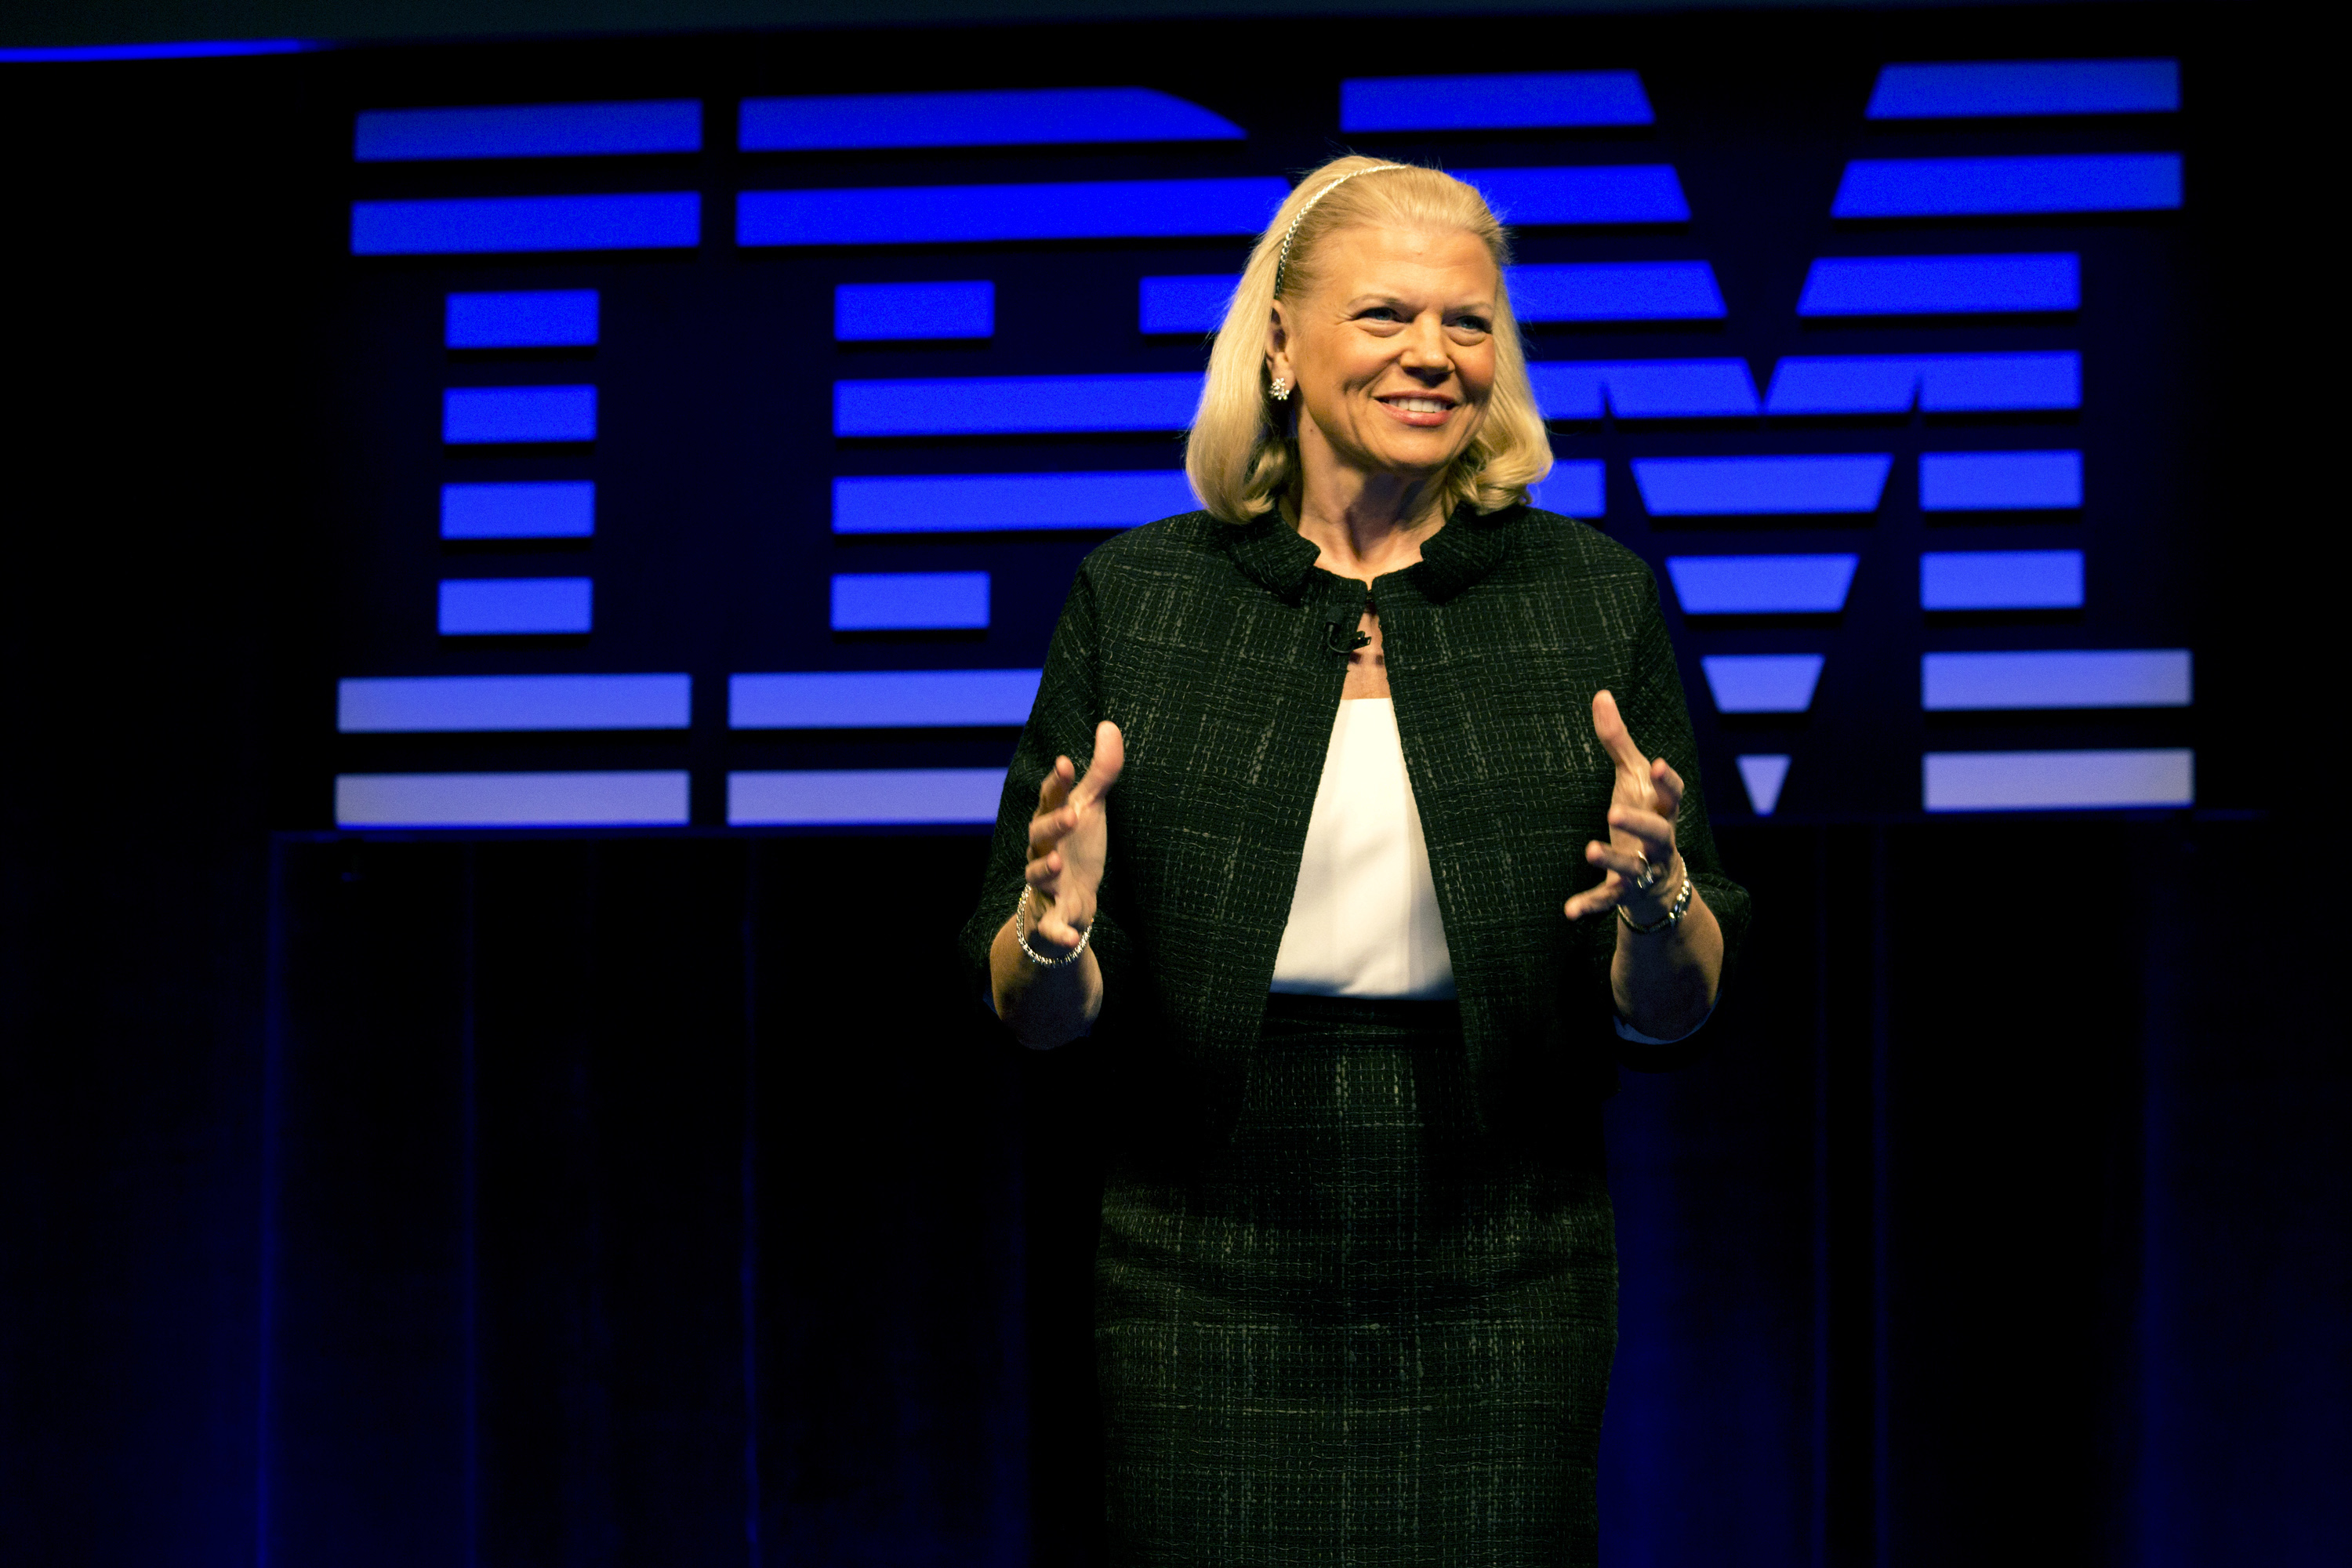 IBM Set to Invest $3bn in Internet of Things Unit